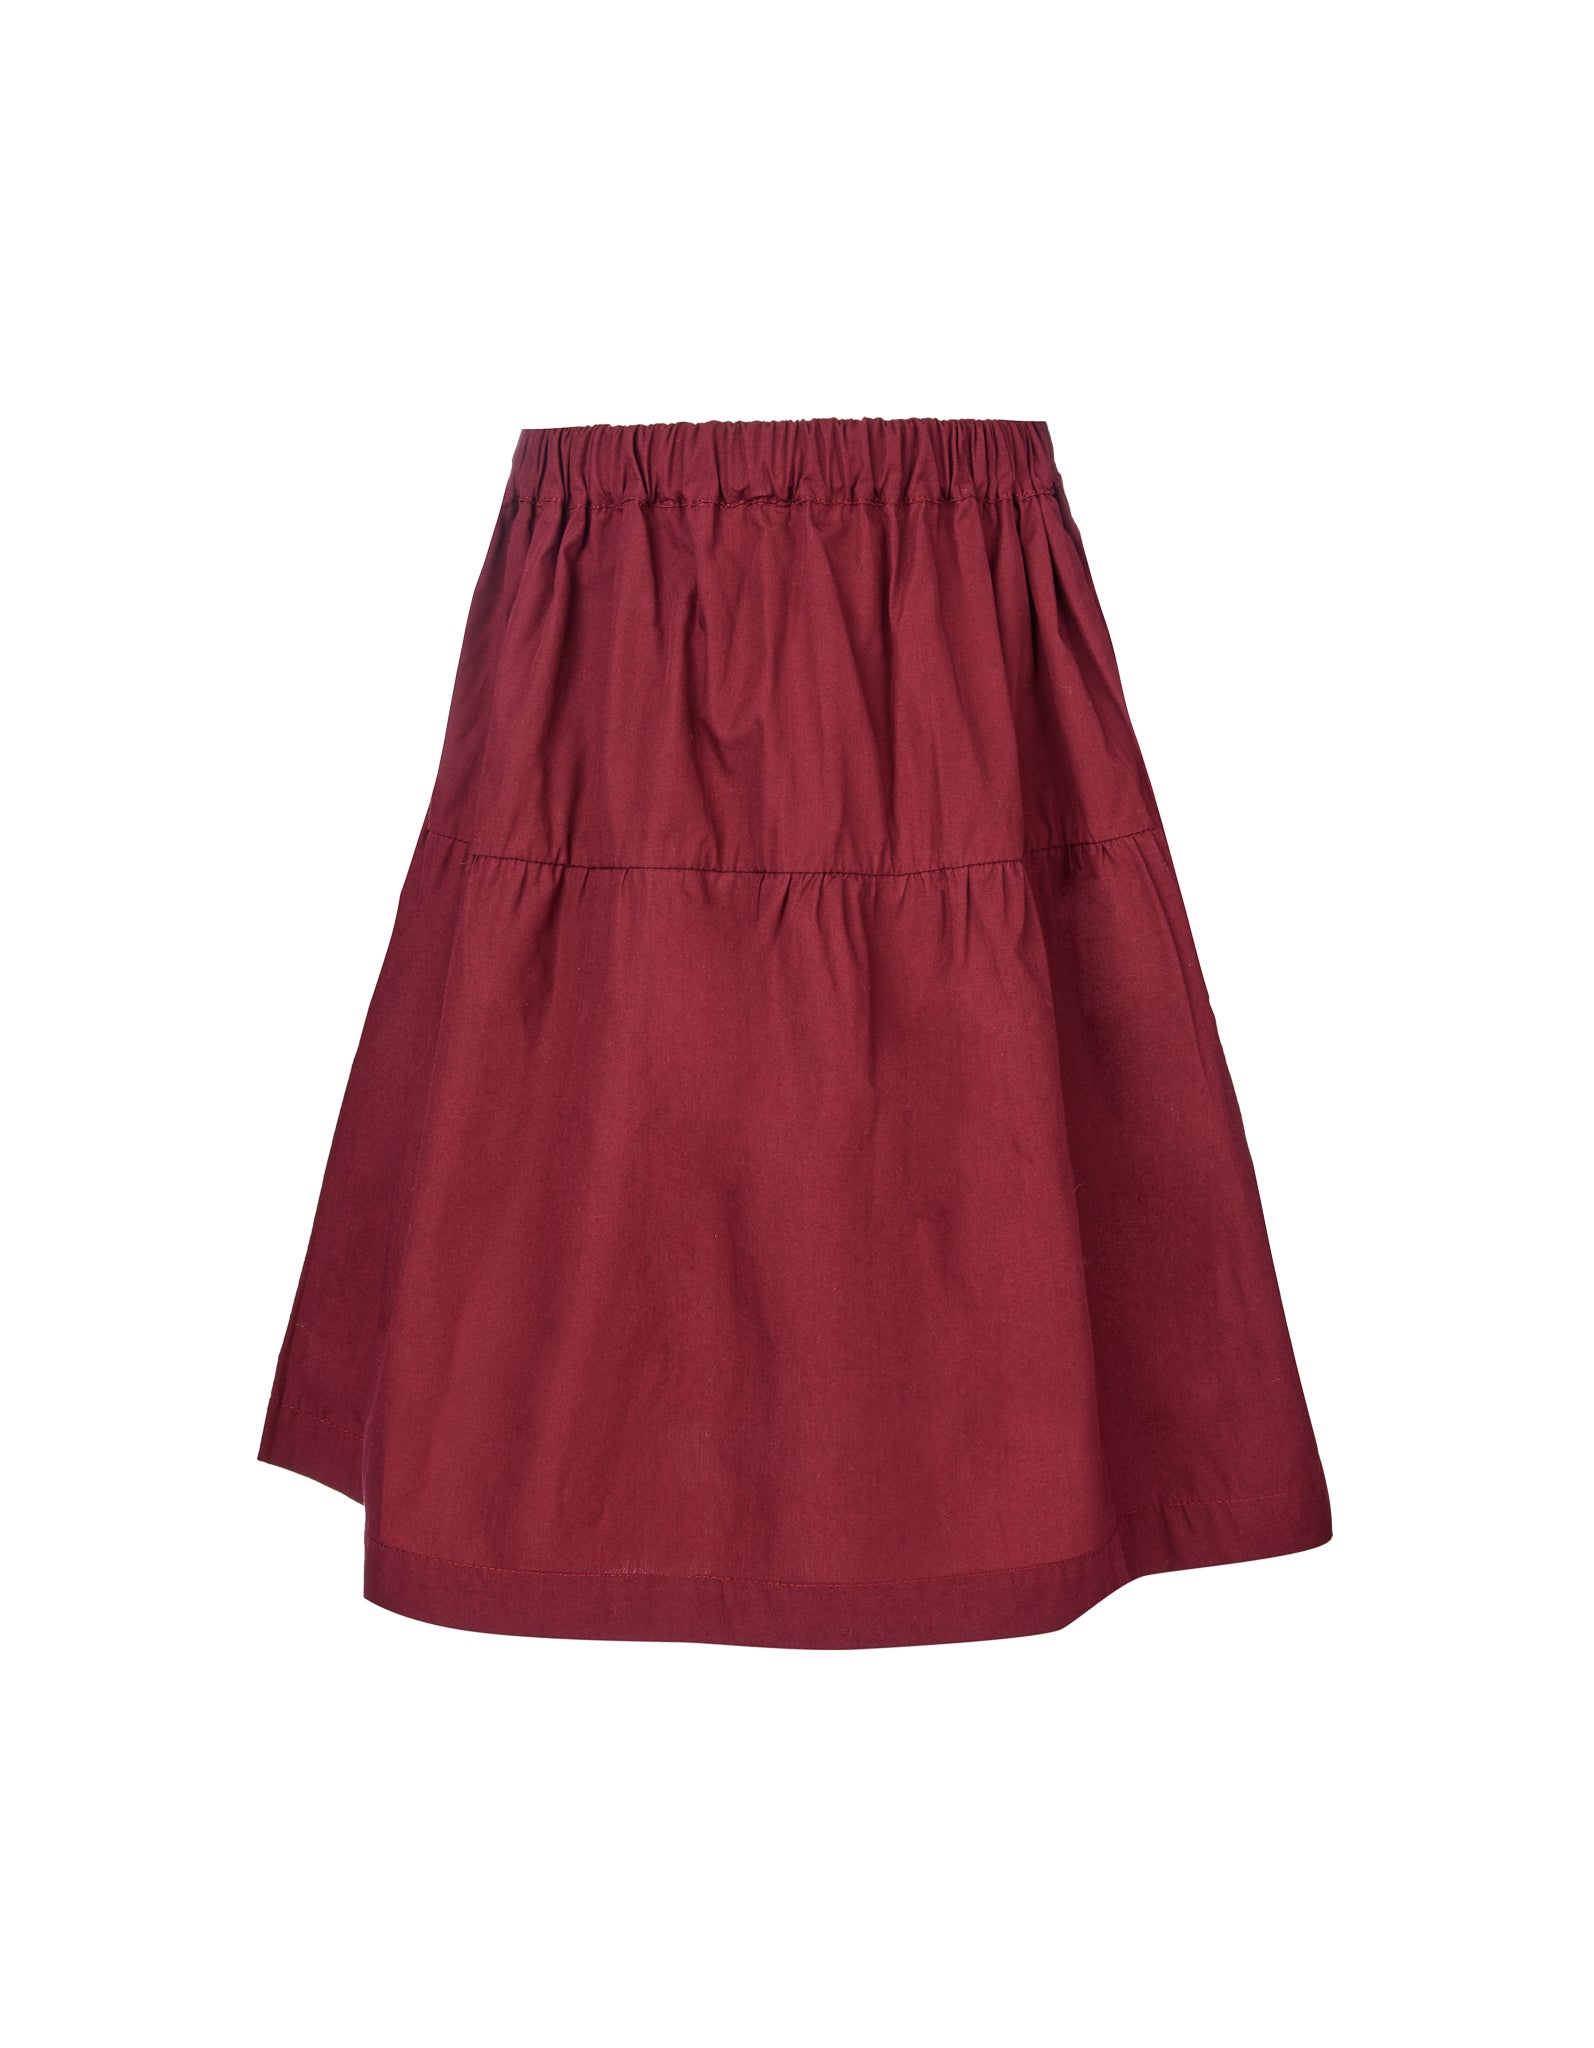 WAISTBAND SKIRT IN BURGUNDY